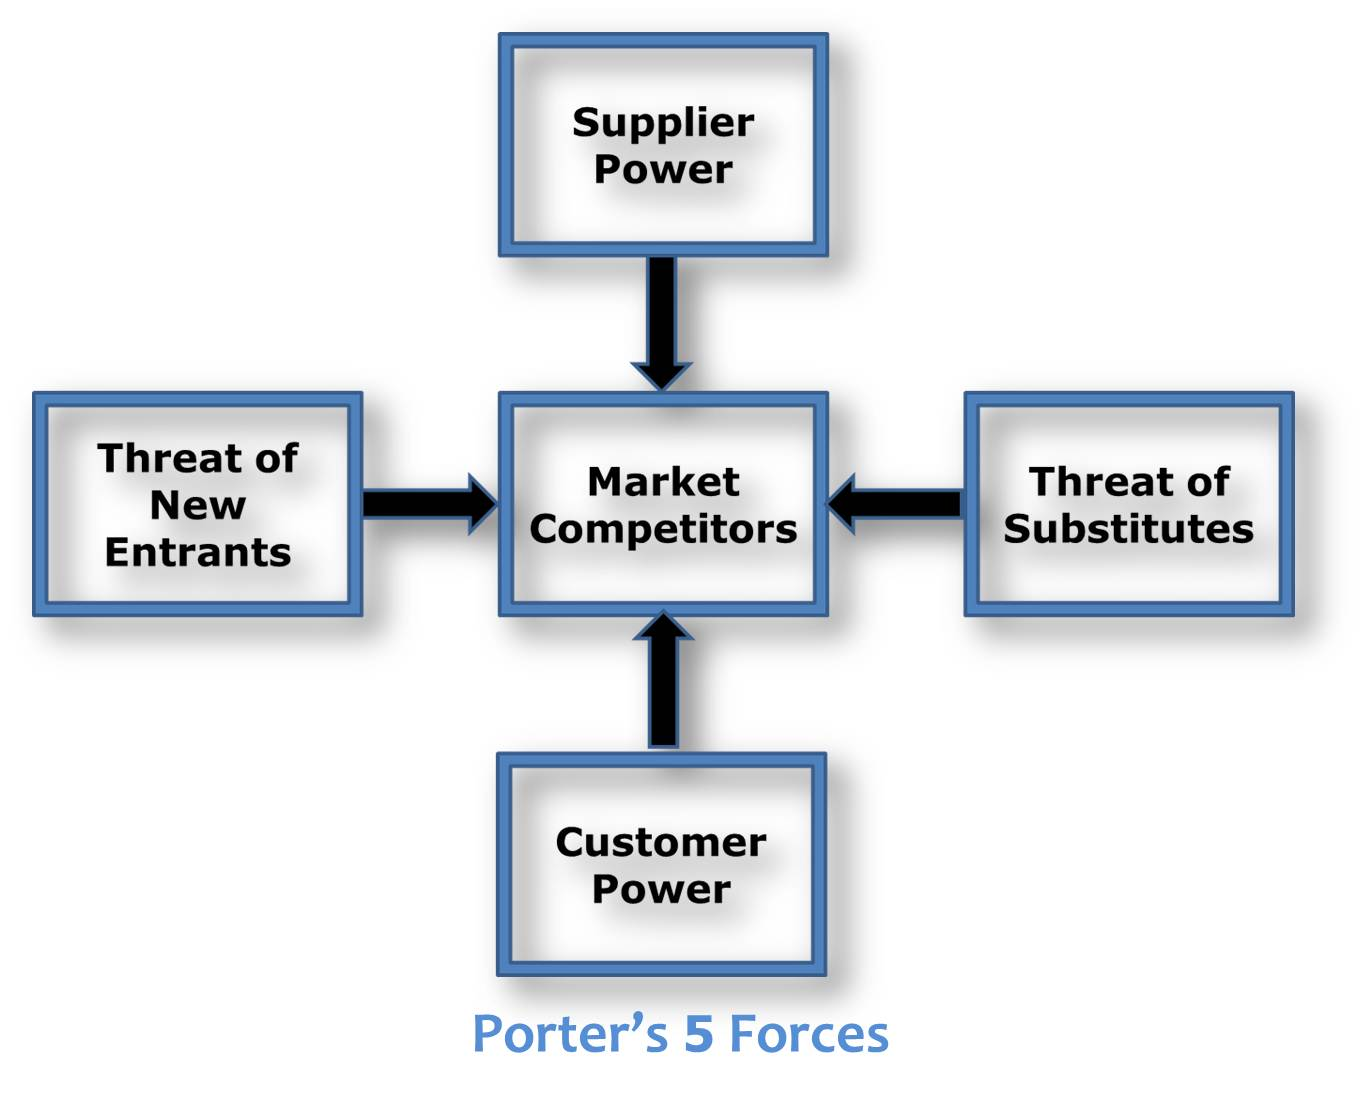 five forces Five forces analysis is a framework to analyze level of competition within an industry and business strategy development this analysis is associated with its principal innovator michael porter of harvard university.